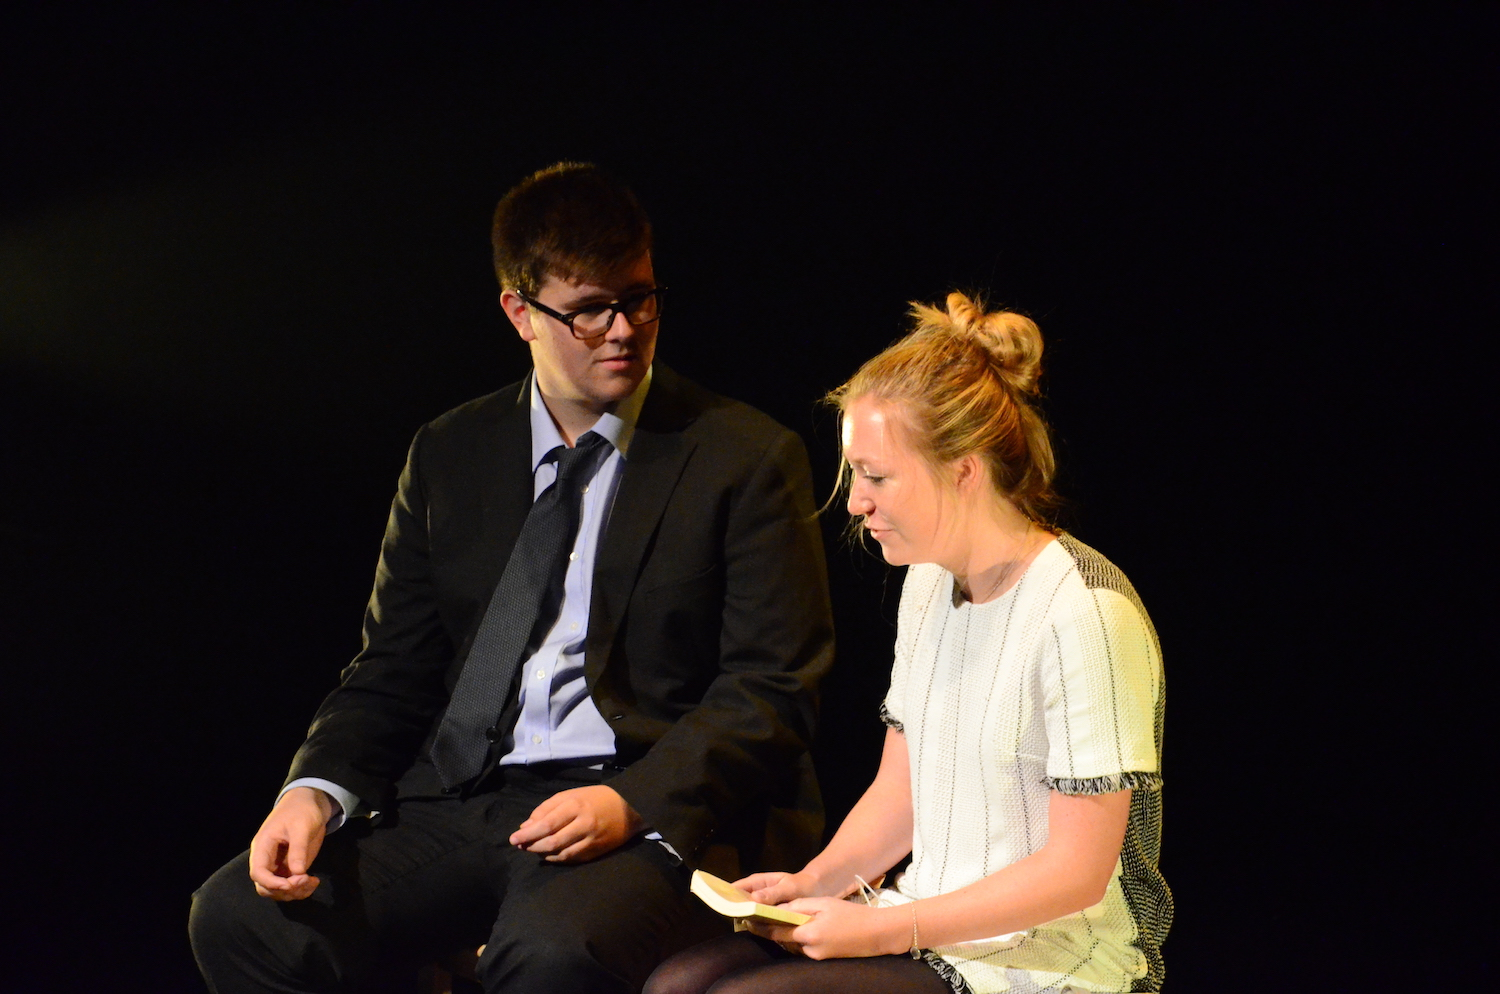 Alleyn's students on stage during a 2017 Edinburgh Fringe performance